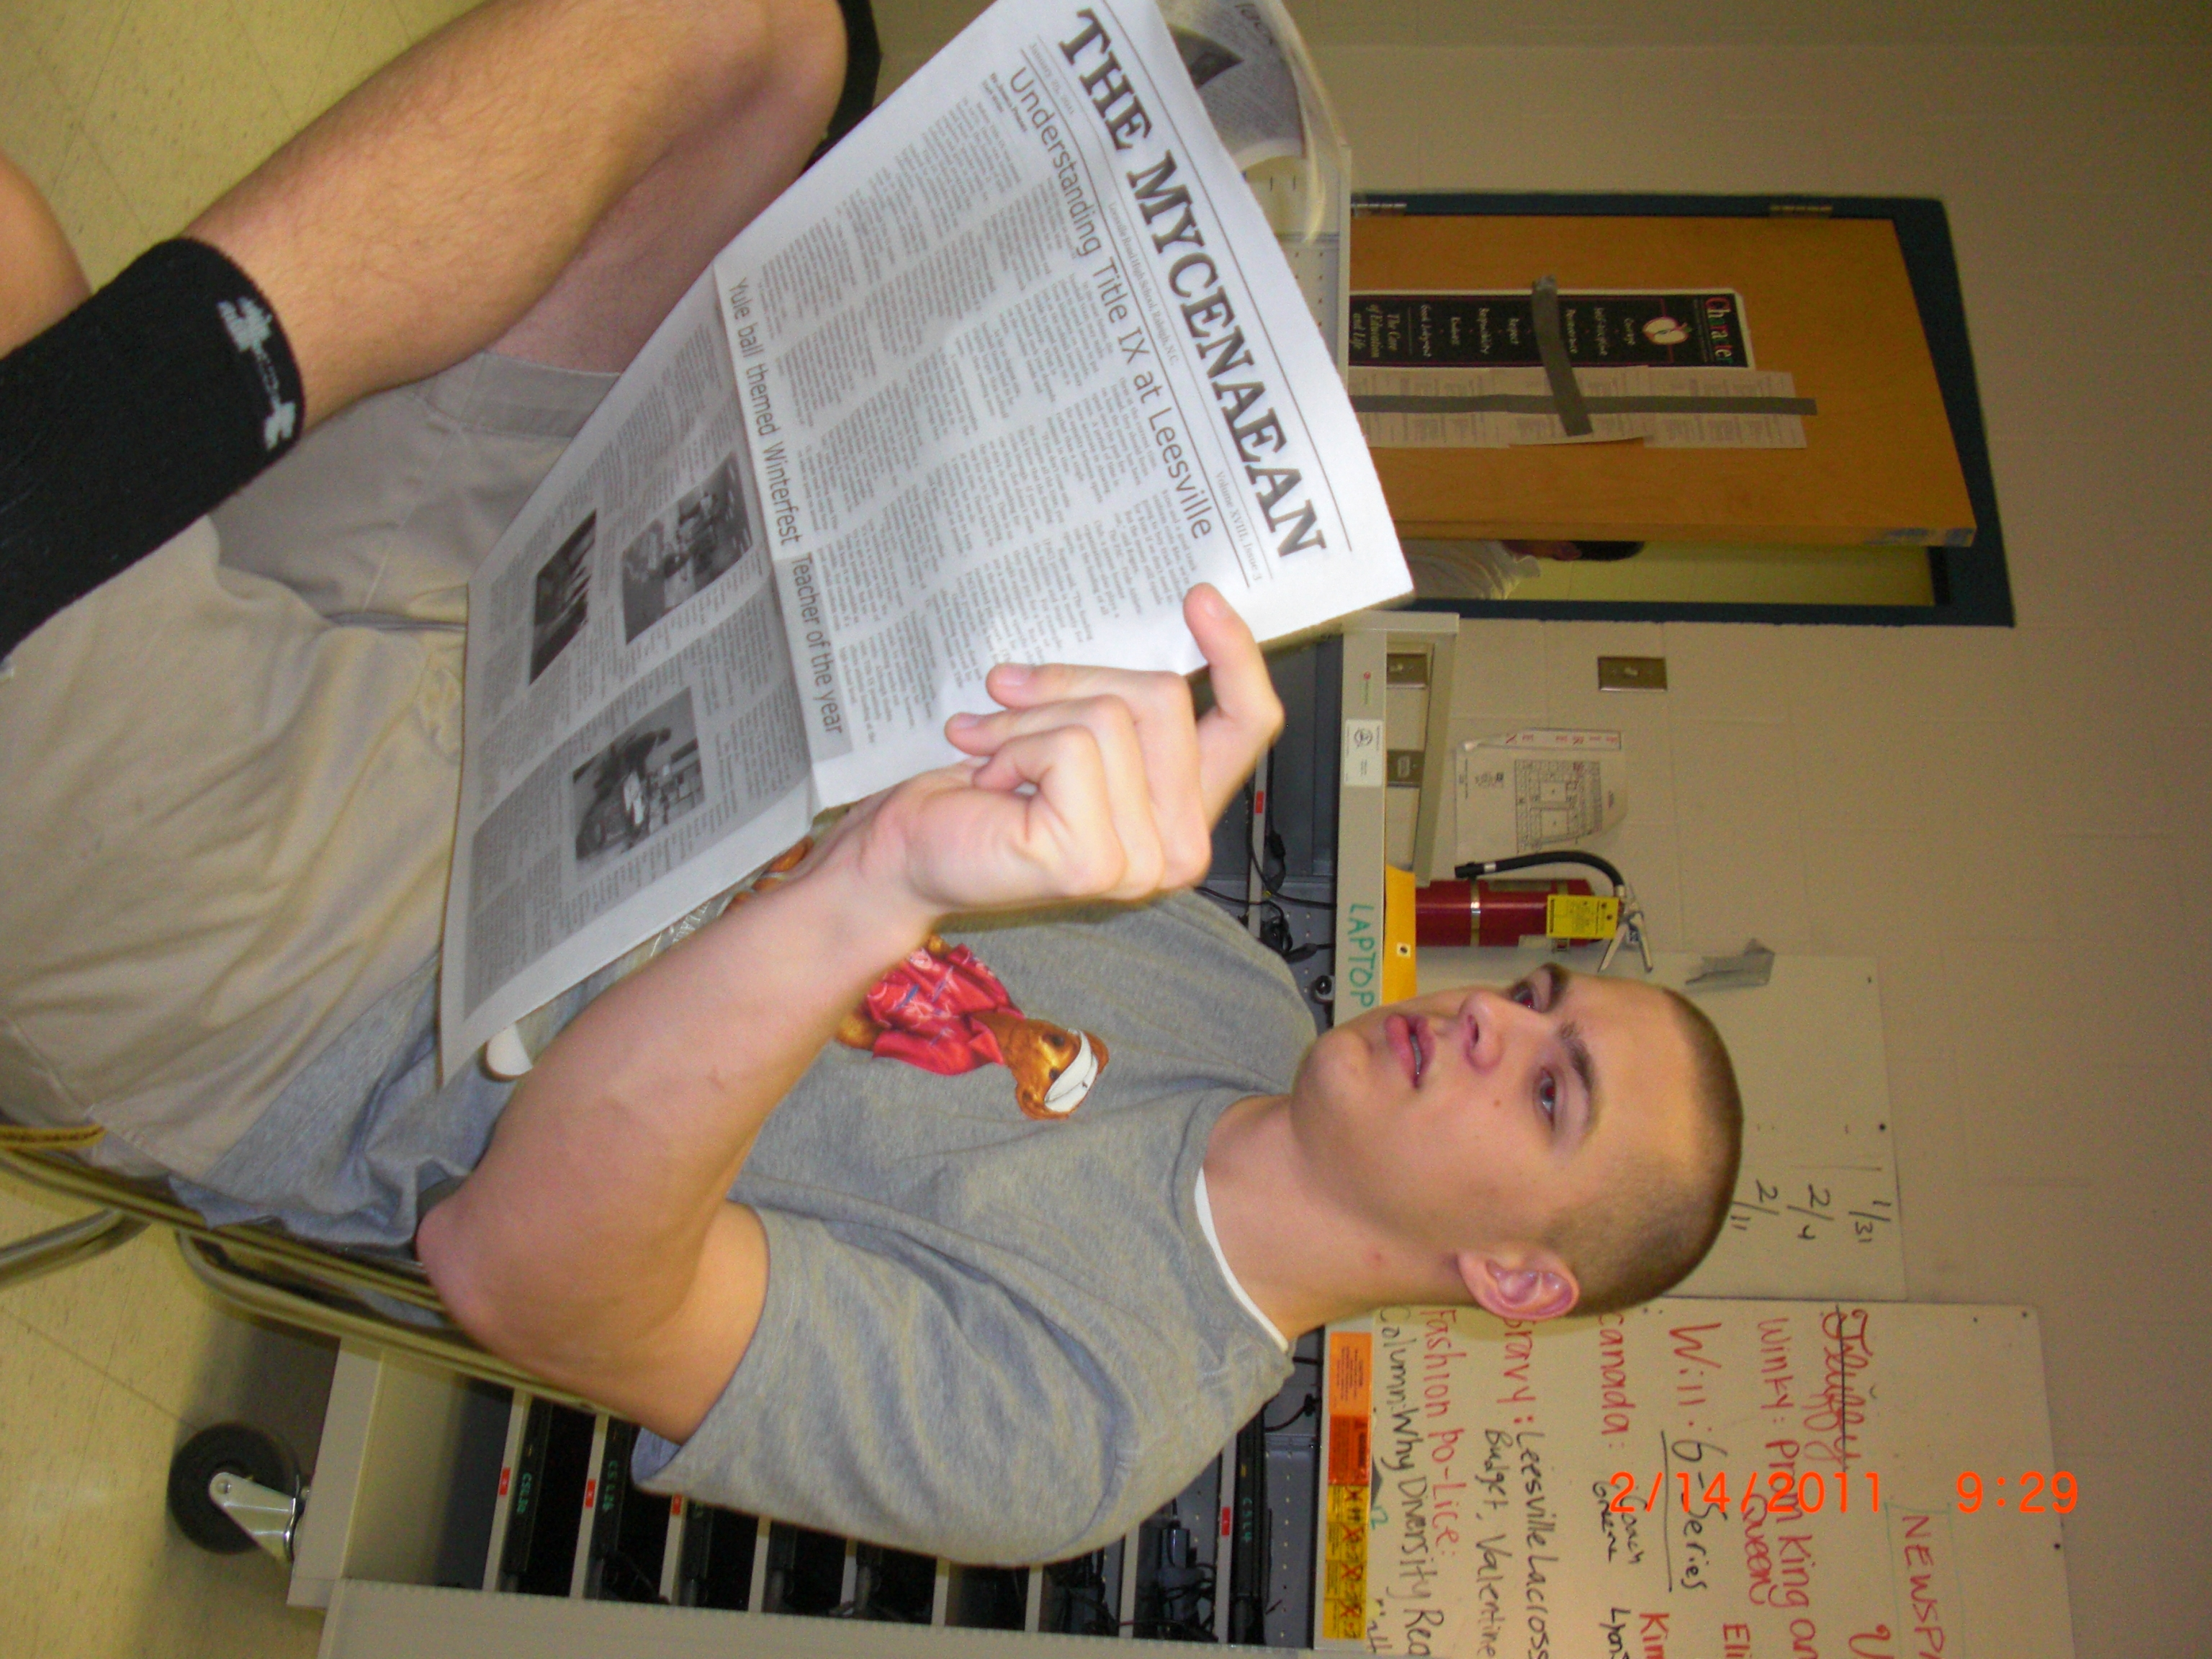 jon reading newspaper for my article about newspapers